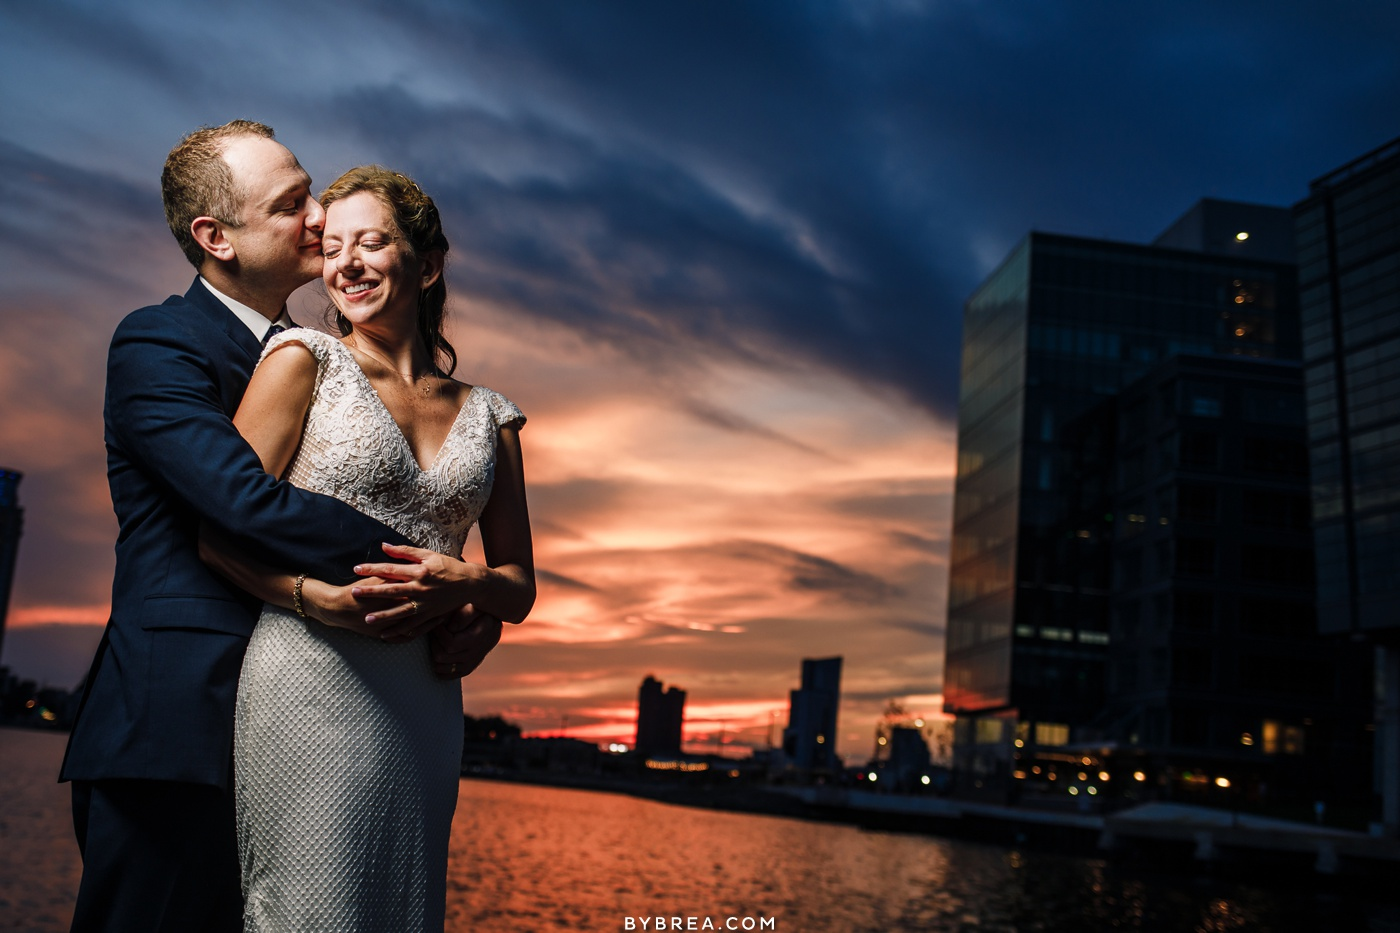 sunset wedding photo at frederick douglass isaac myers maritime museum in baltimore